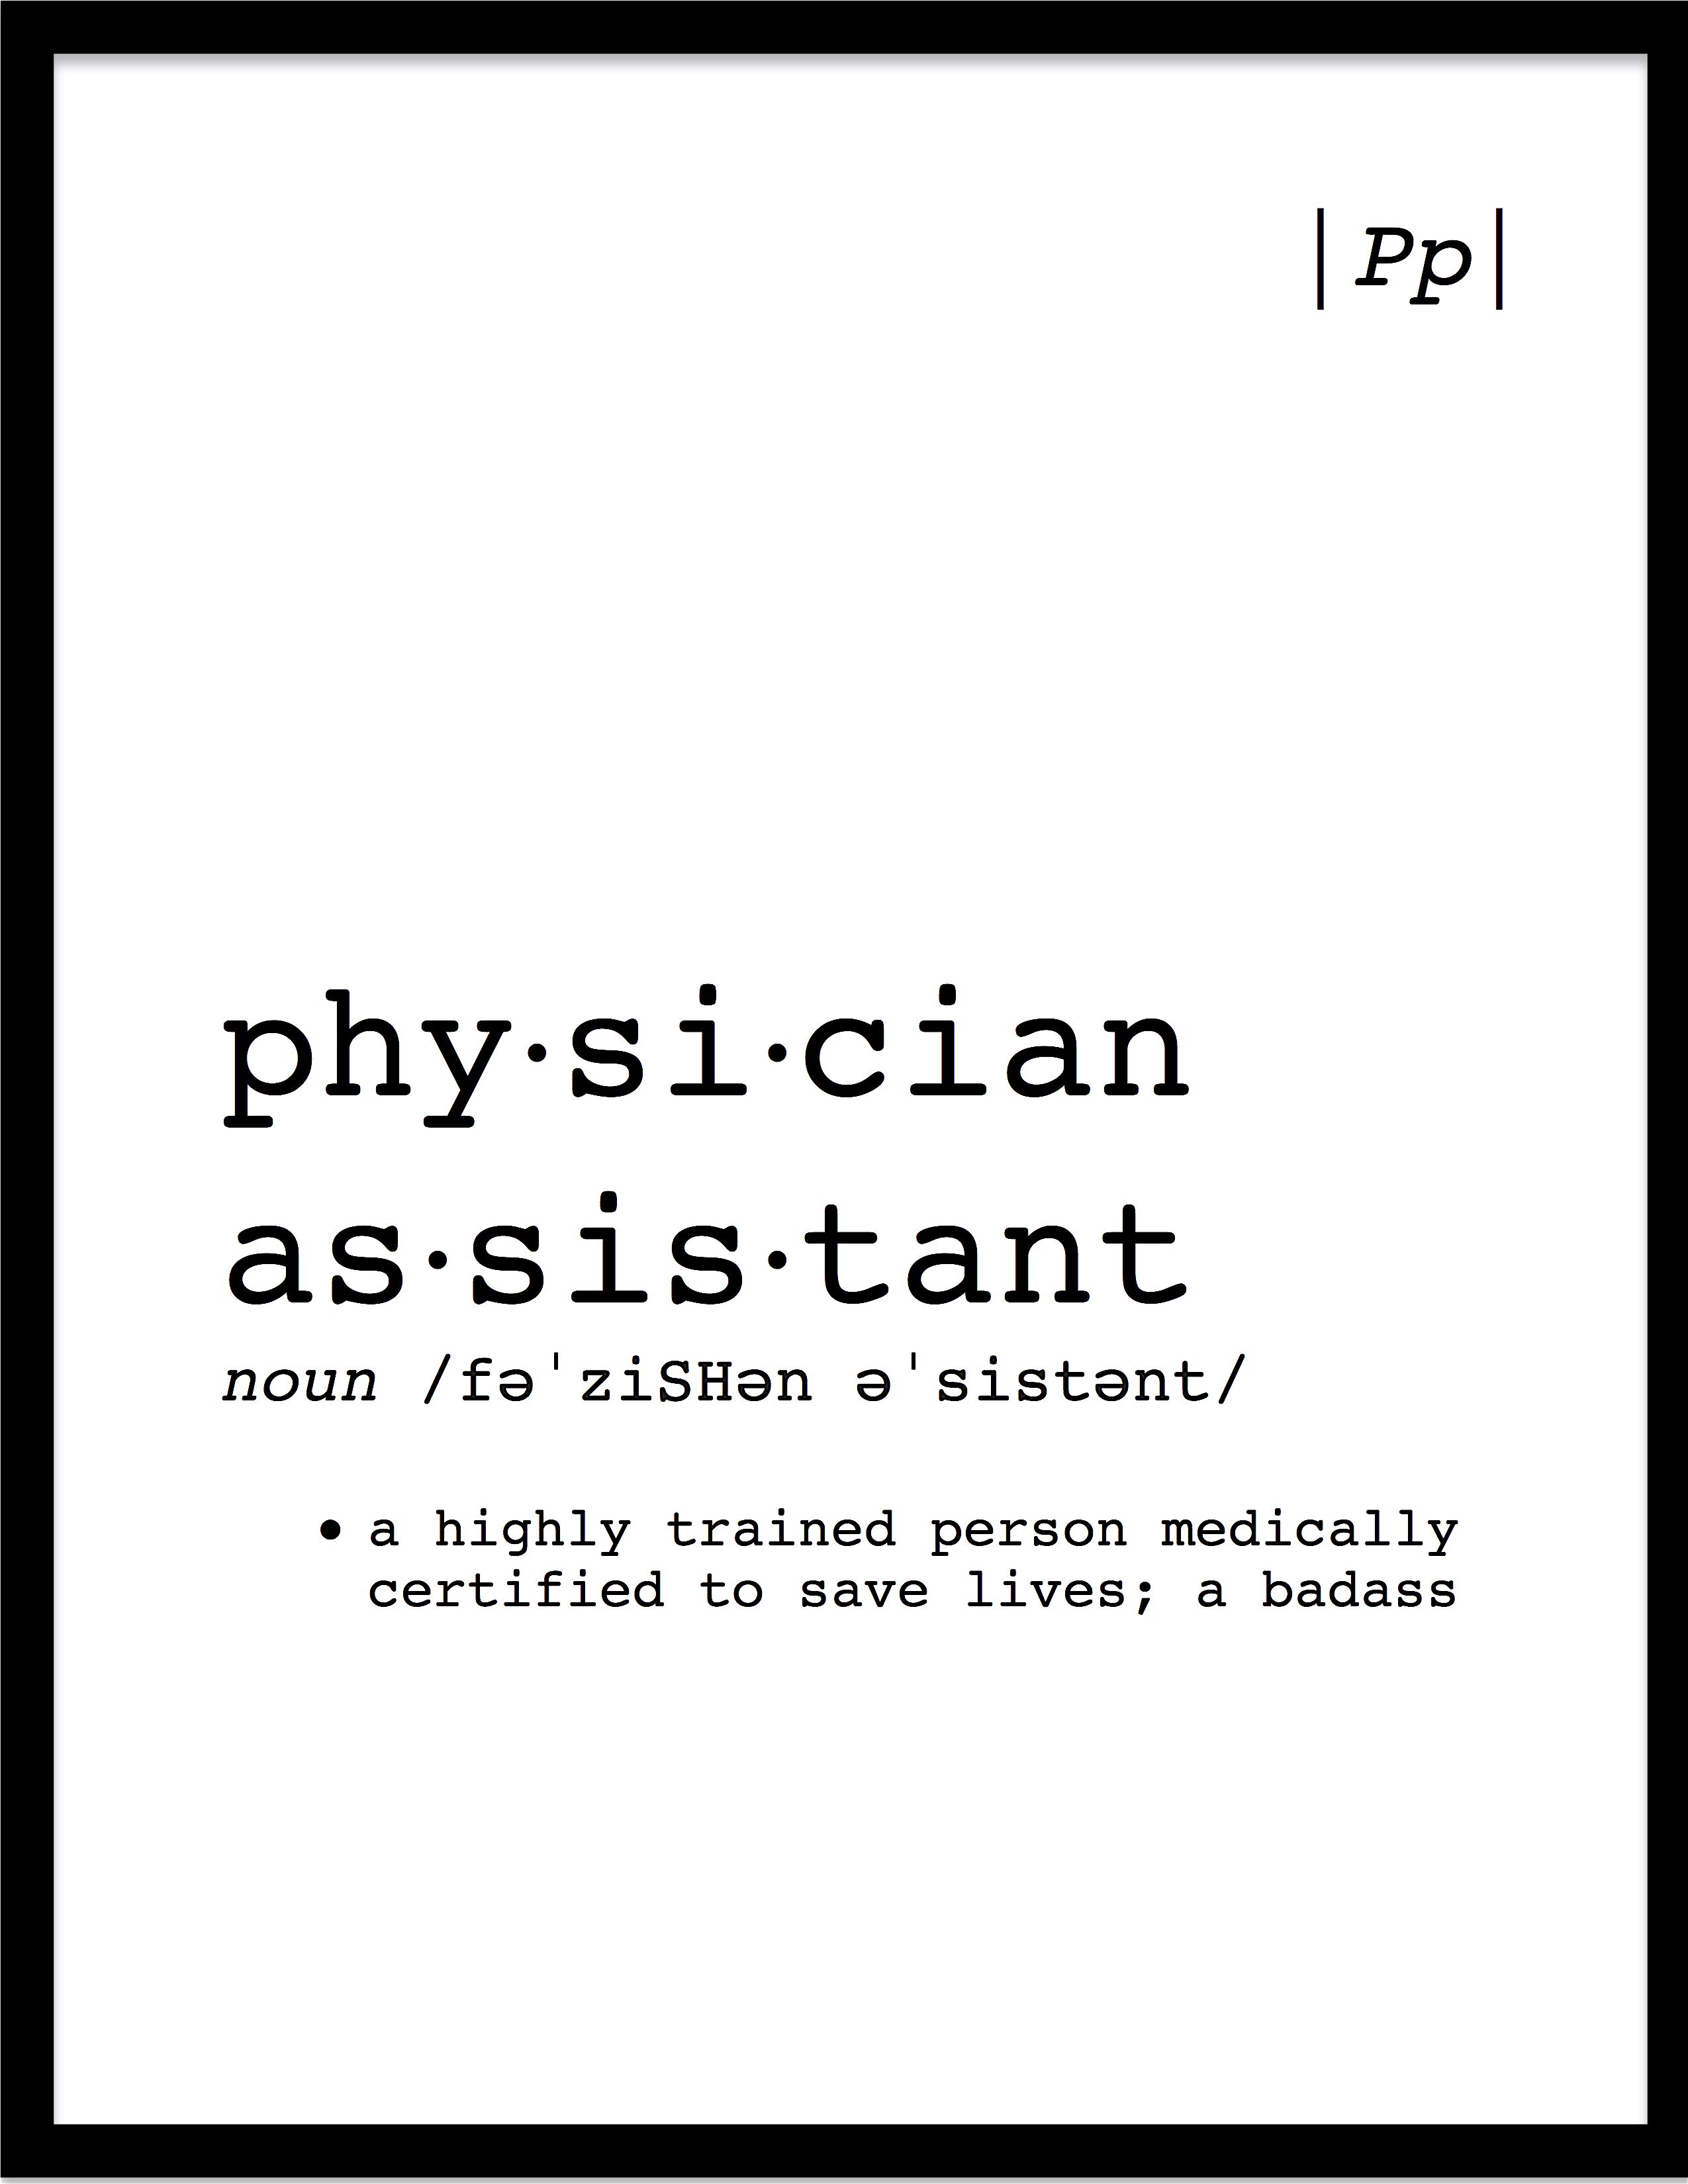 Physician Assistant Printable Definition Medical Office Or Wall Decor Professional Graduation Gift Minimalist Digital Art Medical Office Decor Professional Graduation Gift Physician Assistant